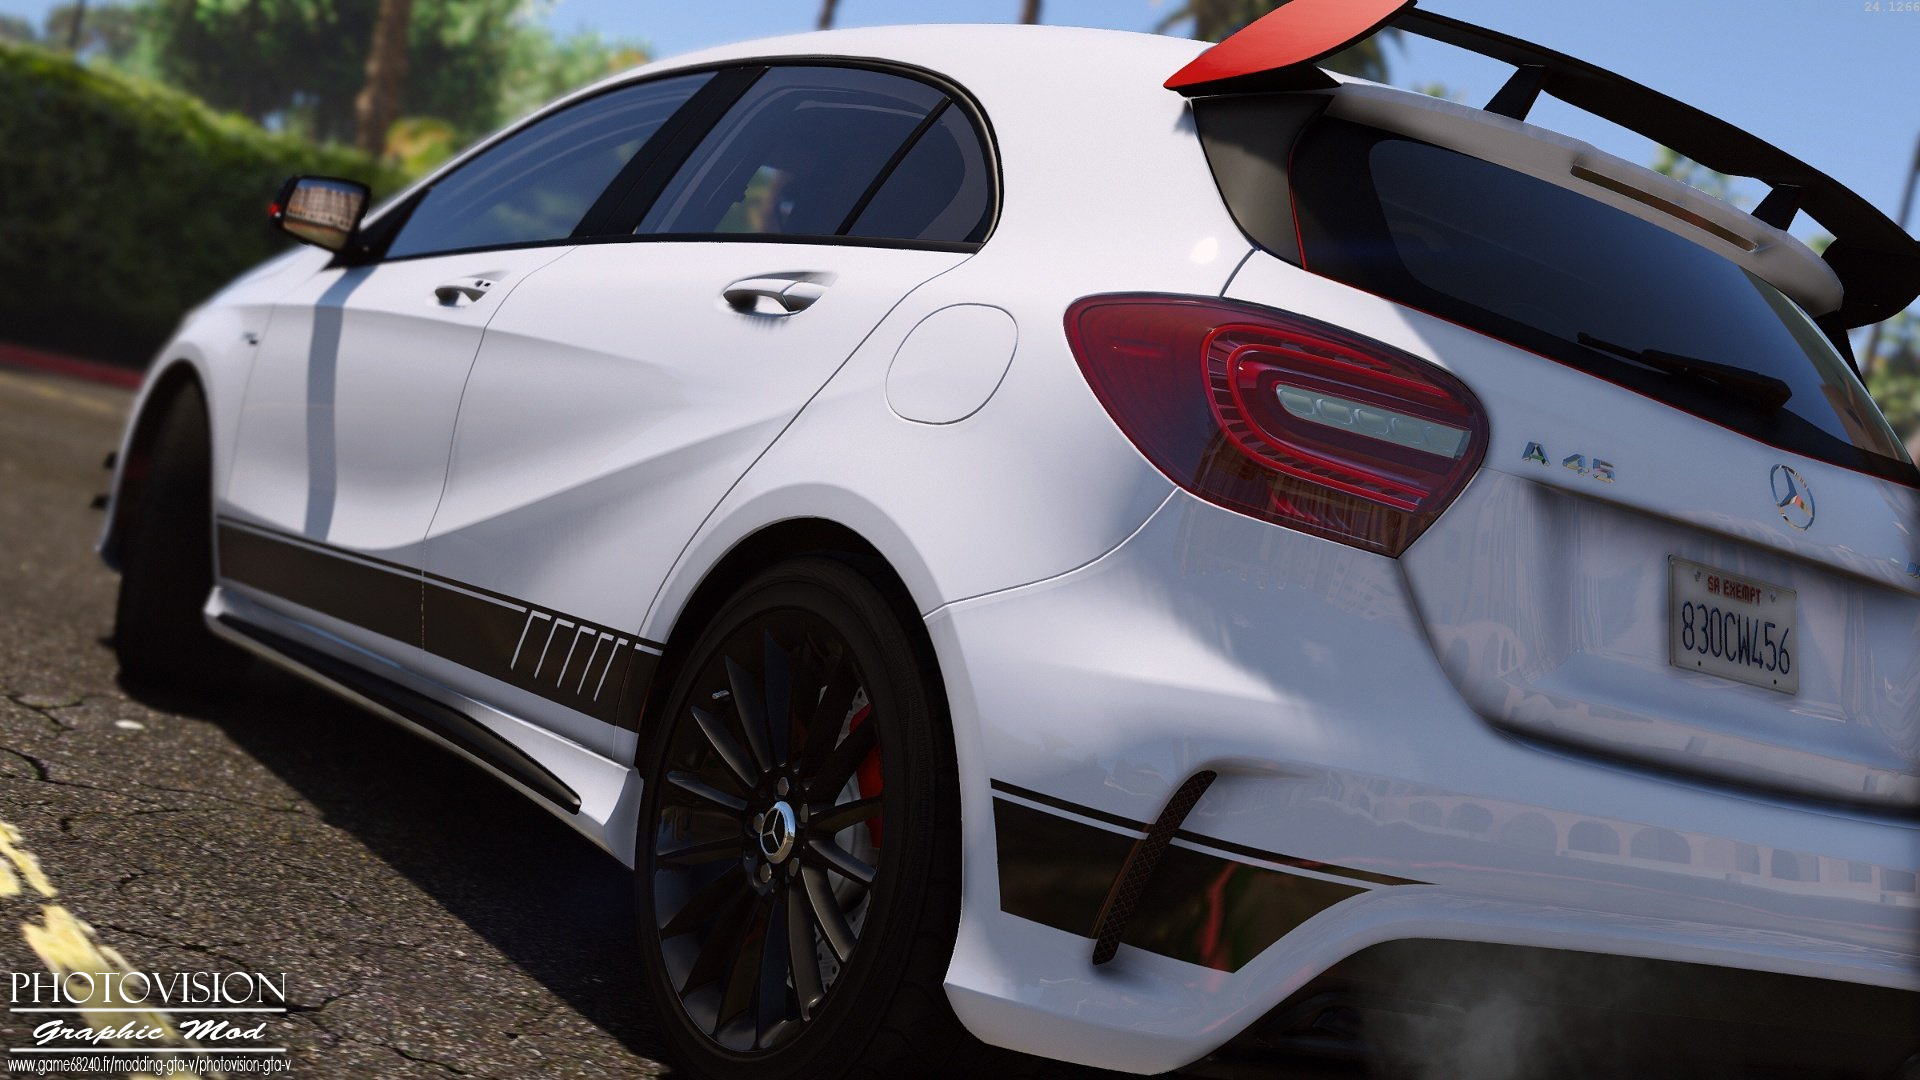 Gta V Car Hd Wallpaper Mercedes Benz Classe A45 Amg Edition 1 Add On Replace